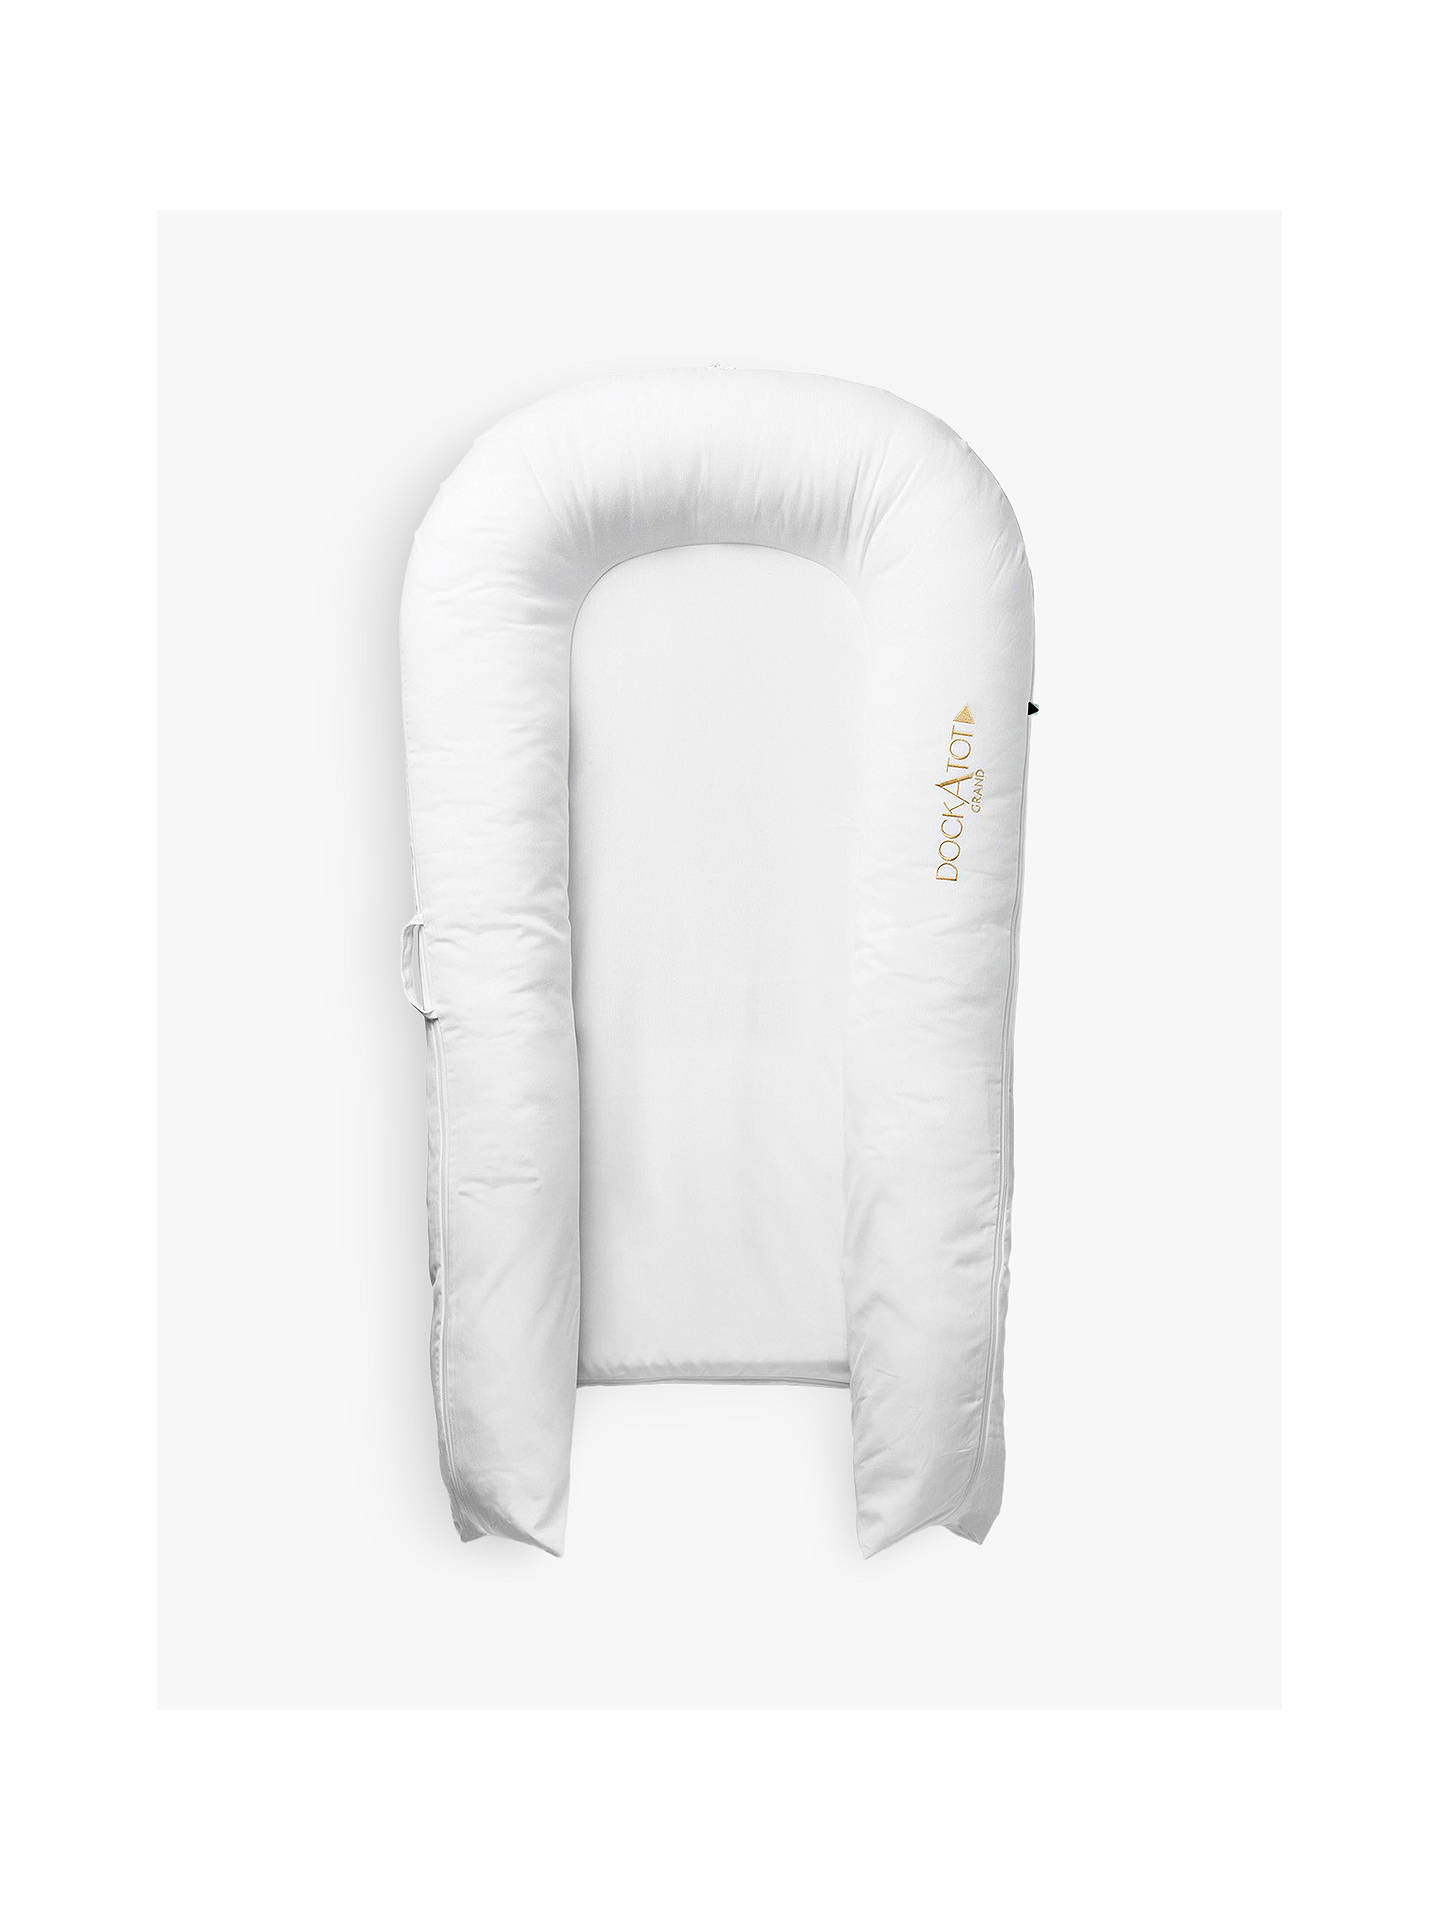 Buy DockATot Grand Pristine White Baby Pod, 9-36 months Online at johnlewis.com